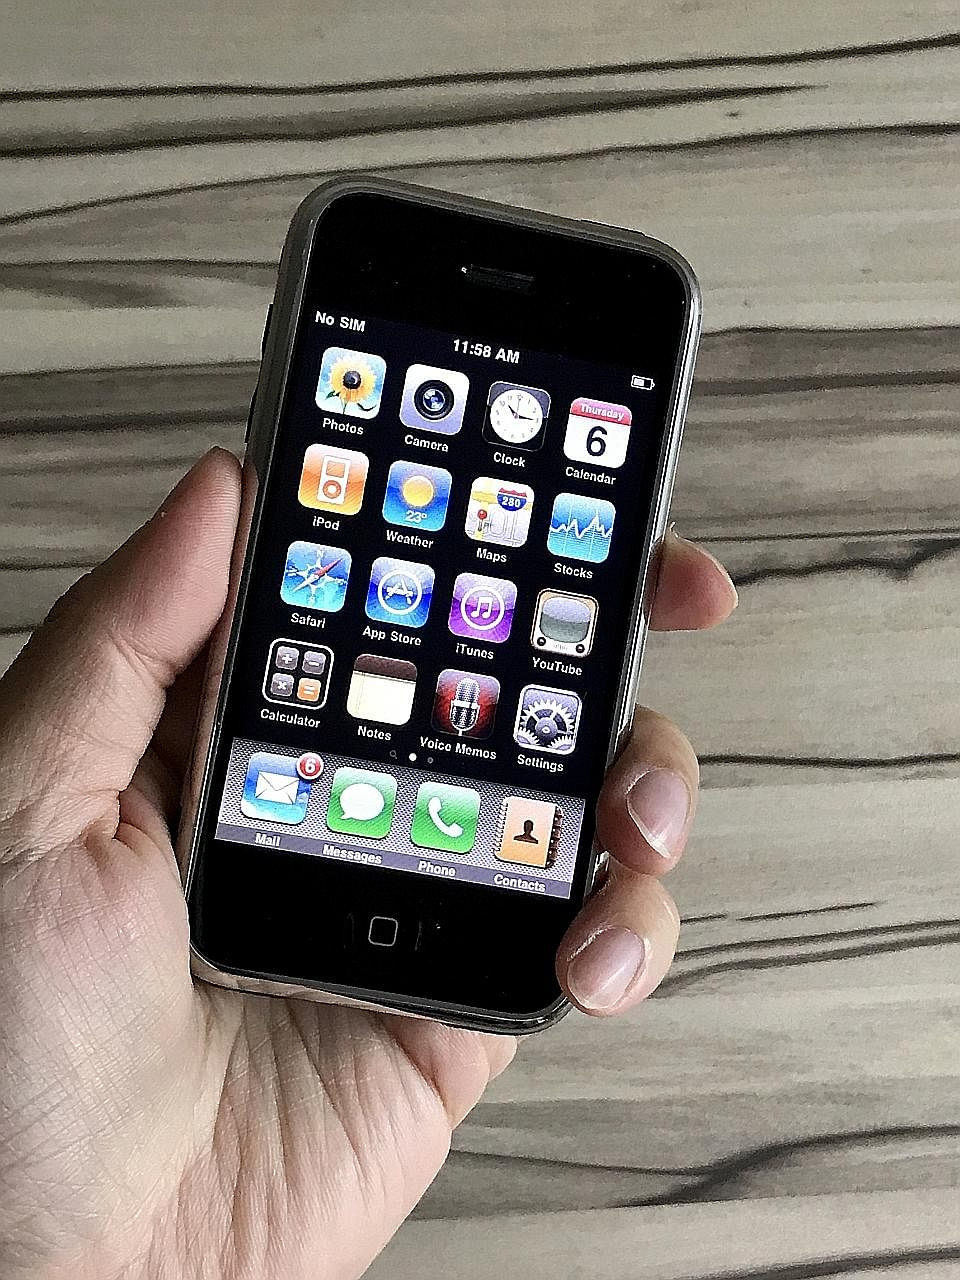 The first iPhone launched a decade ago probably sparked a chain of events that led to the modern era of mobile computing as we know it.